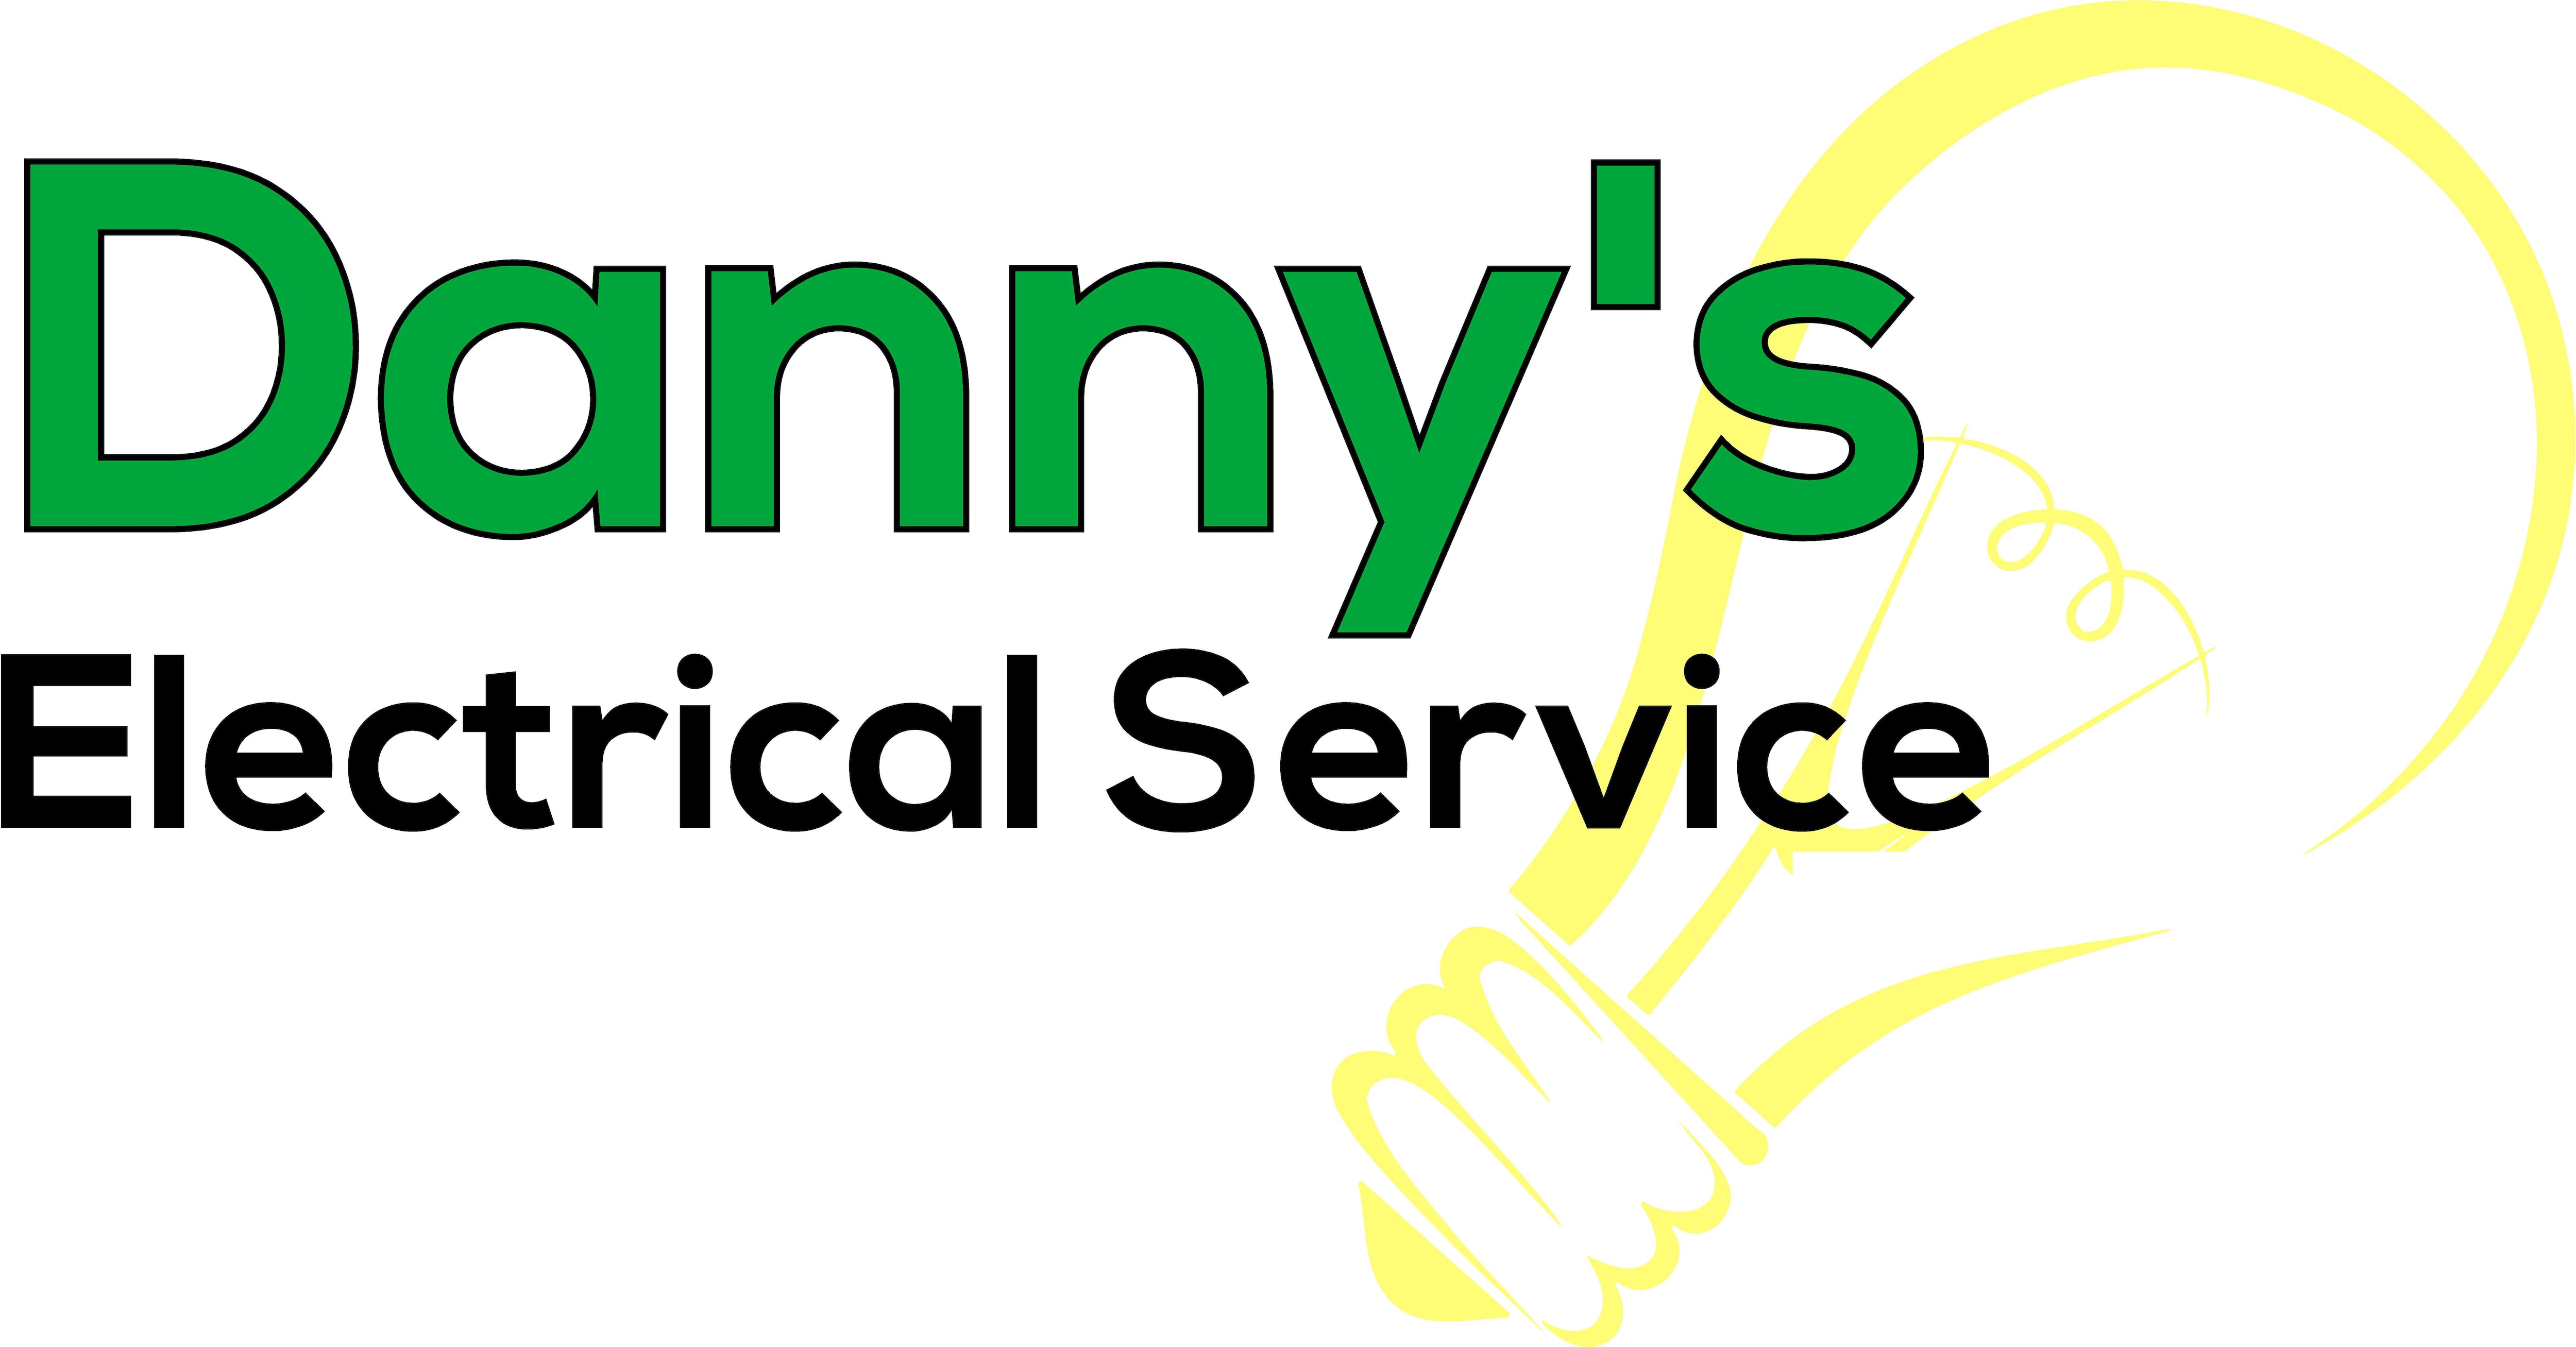 Danny's Electrical Service logo